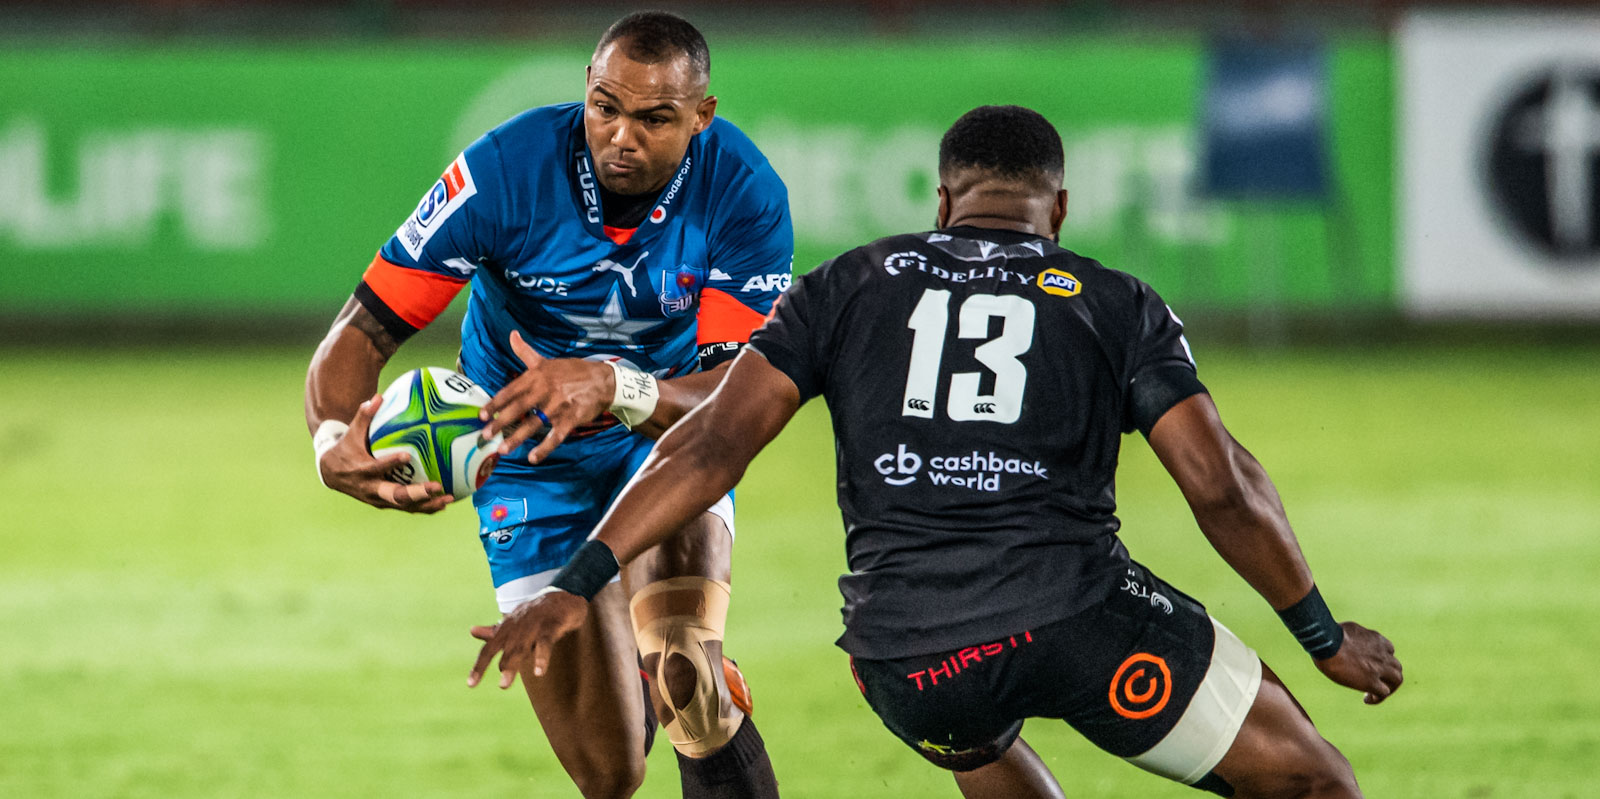 Cornal Hendricks takes on the Cell C Sharks' defence.